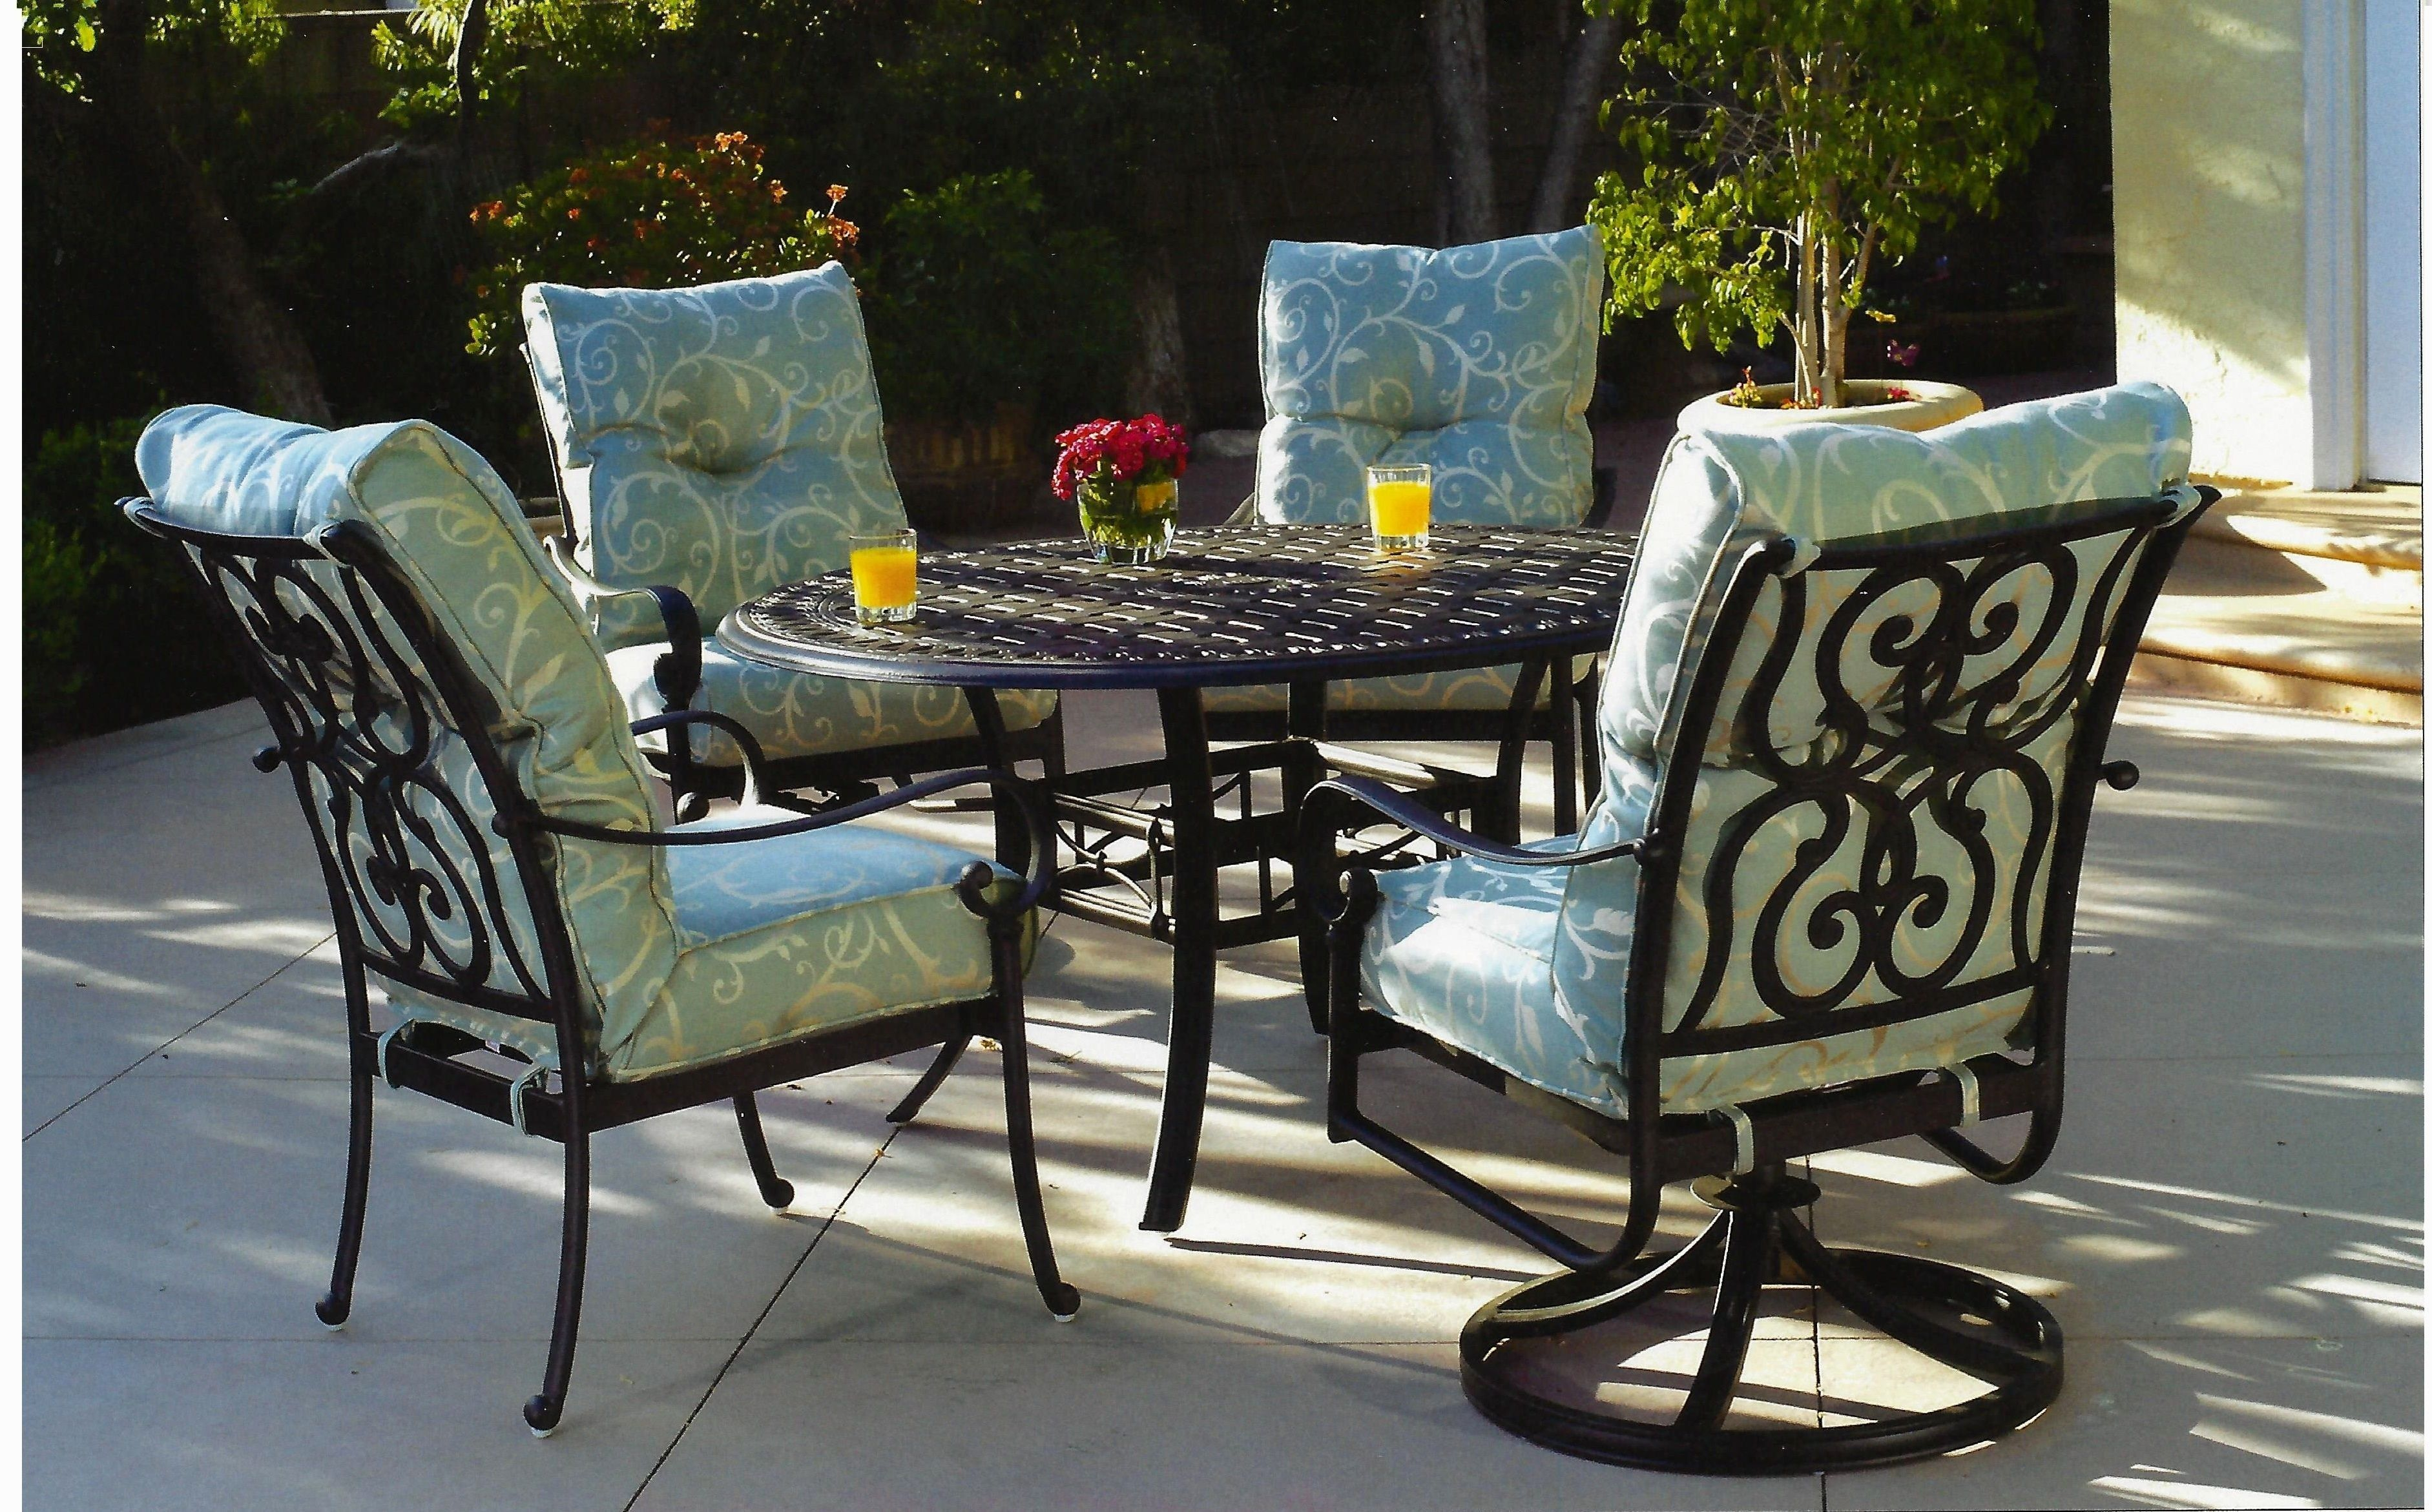 Clever Ideas Used Outdoor Furniture Singapore Sydney Melbourne